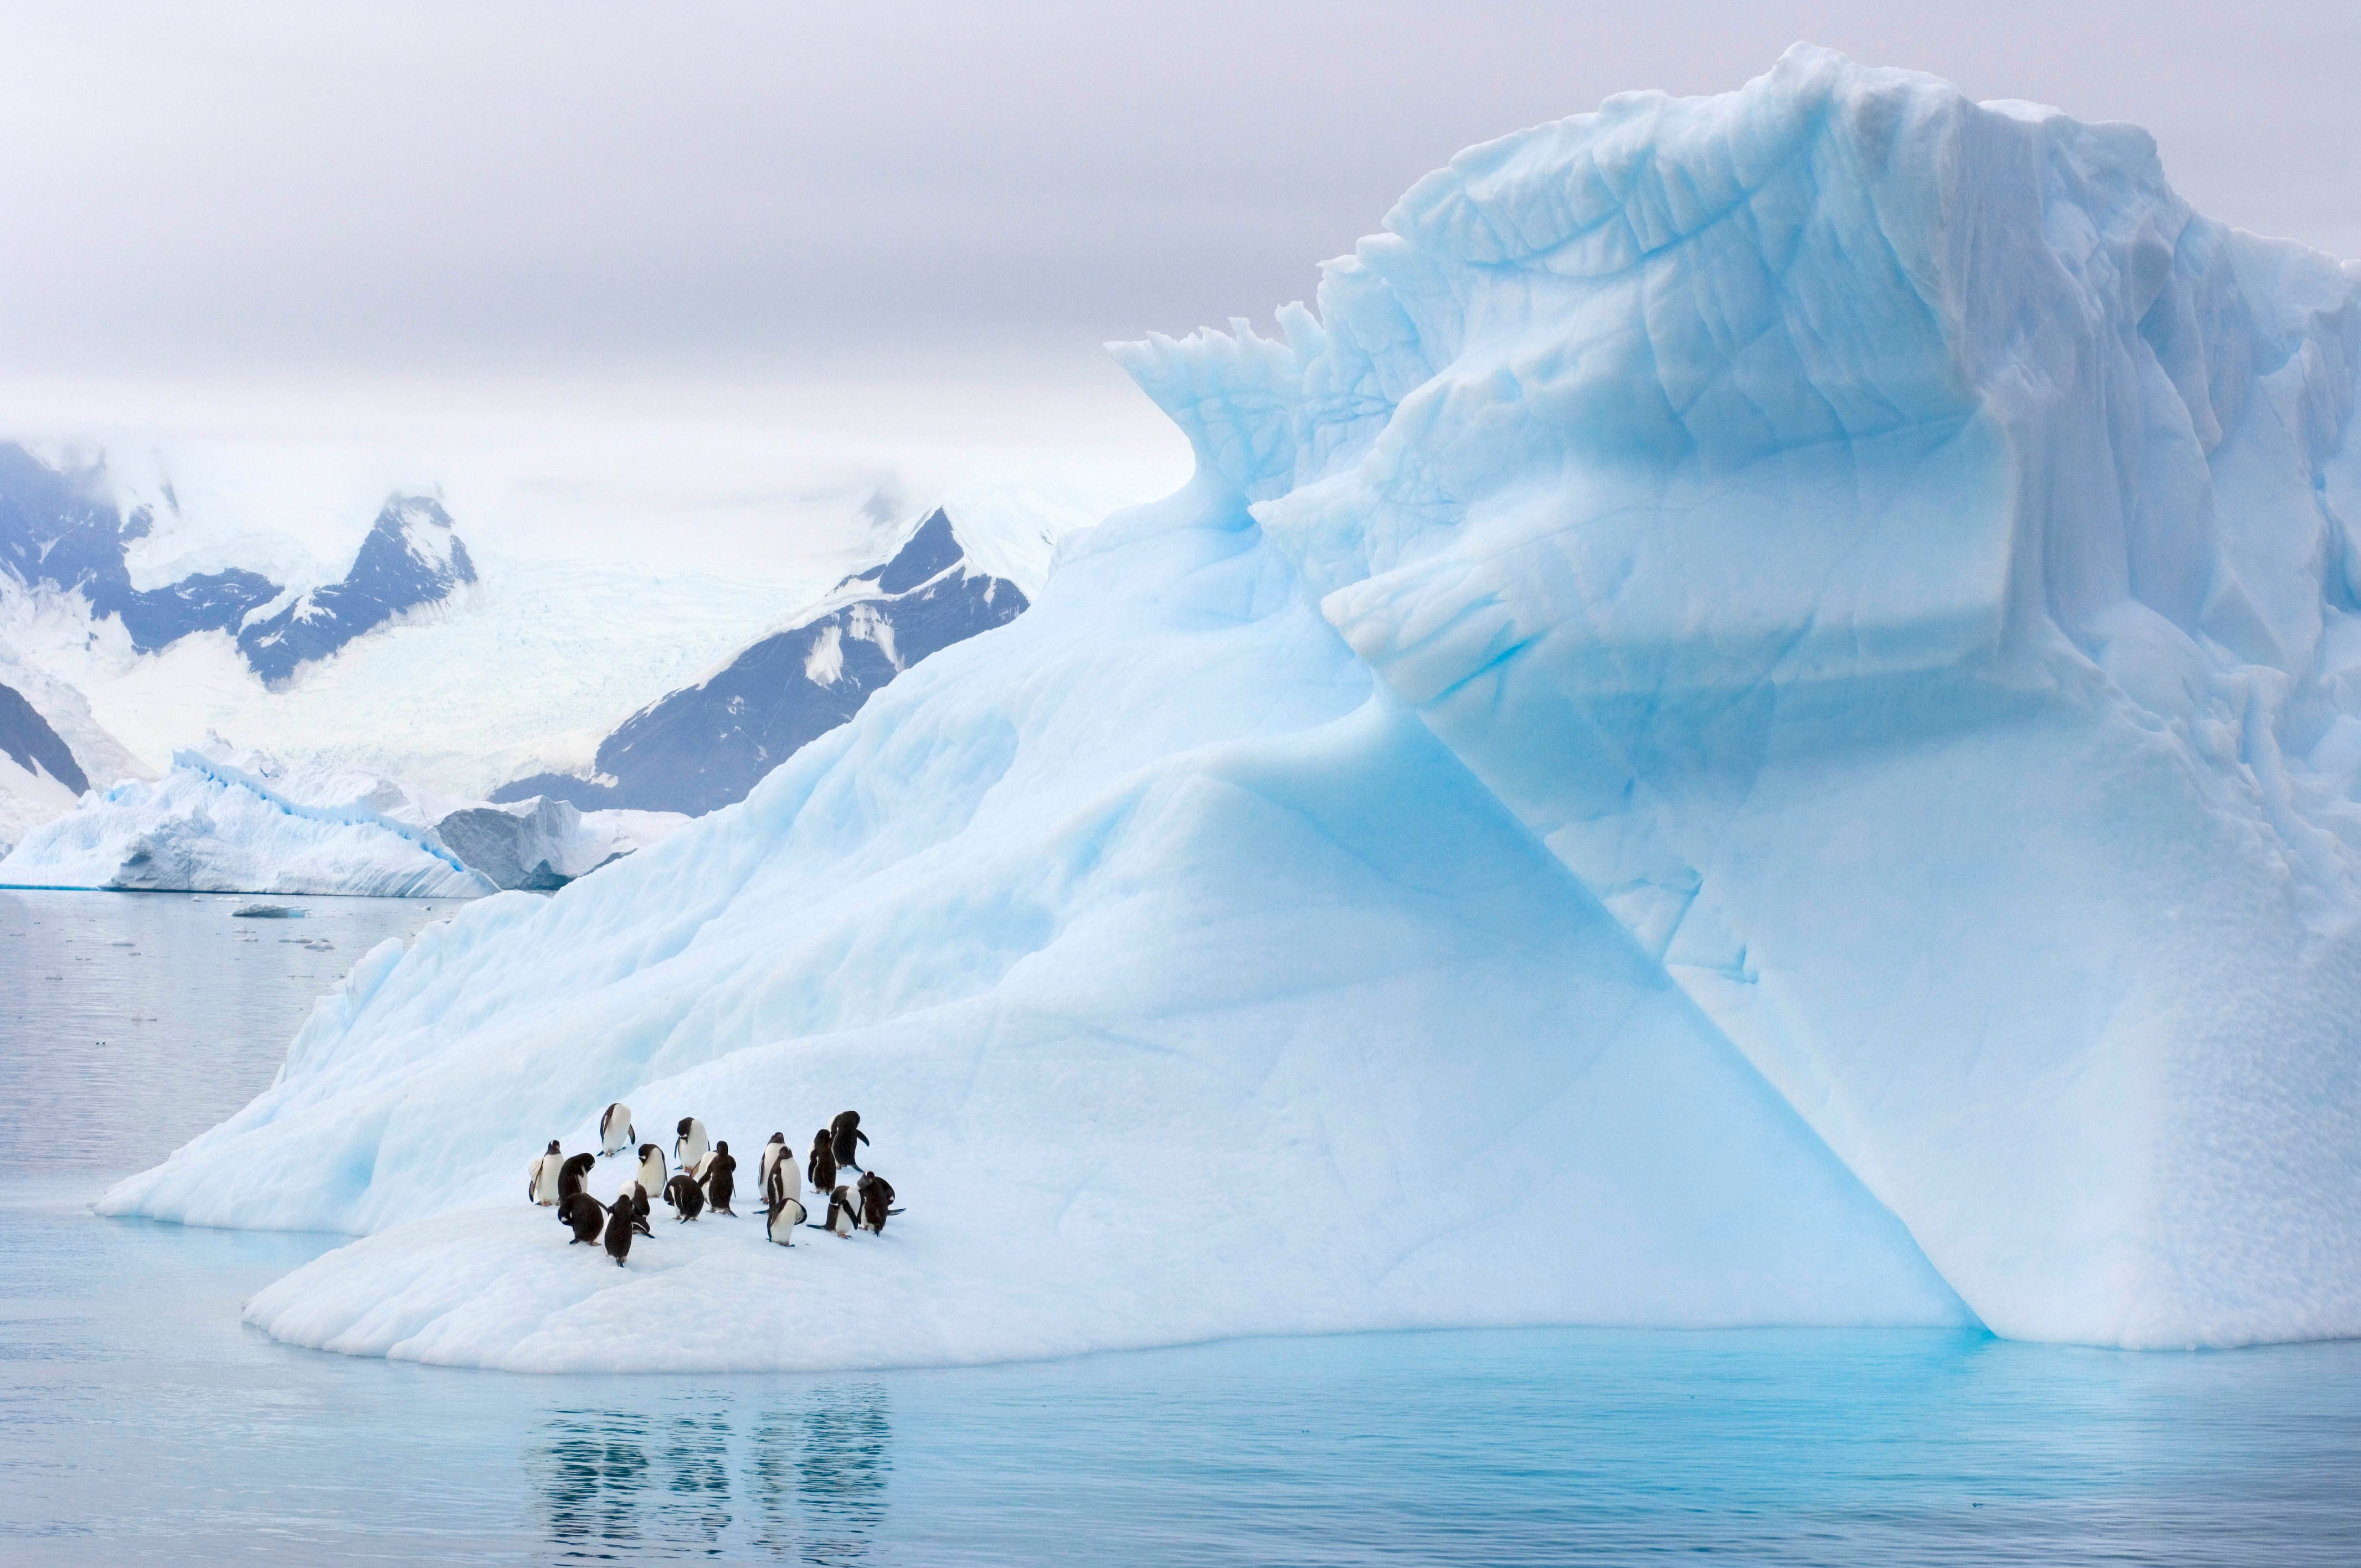 The Natural Sculptures Of Antarctic Icebergs